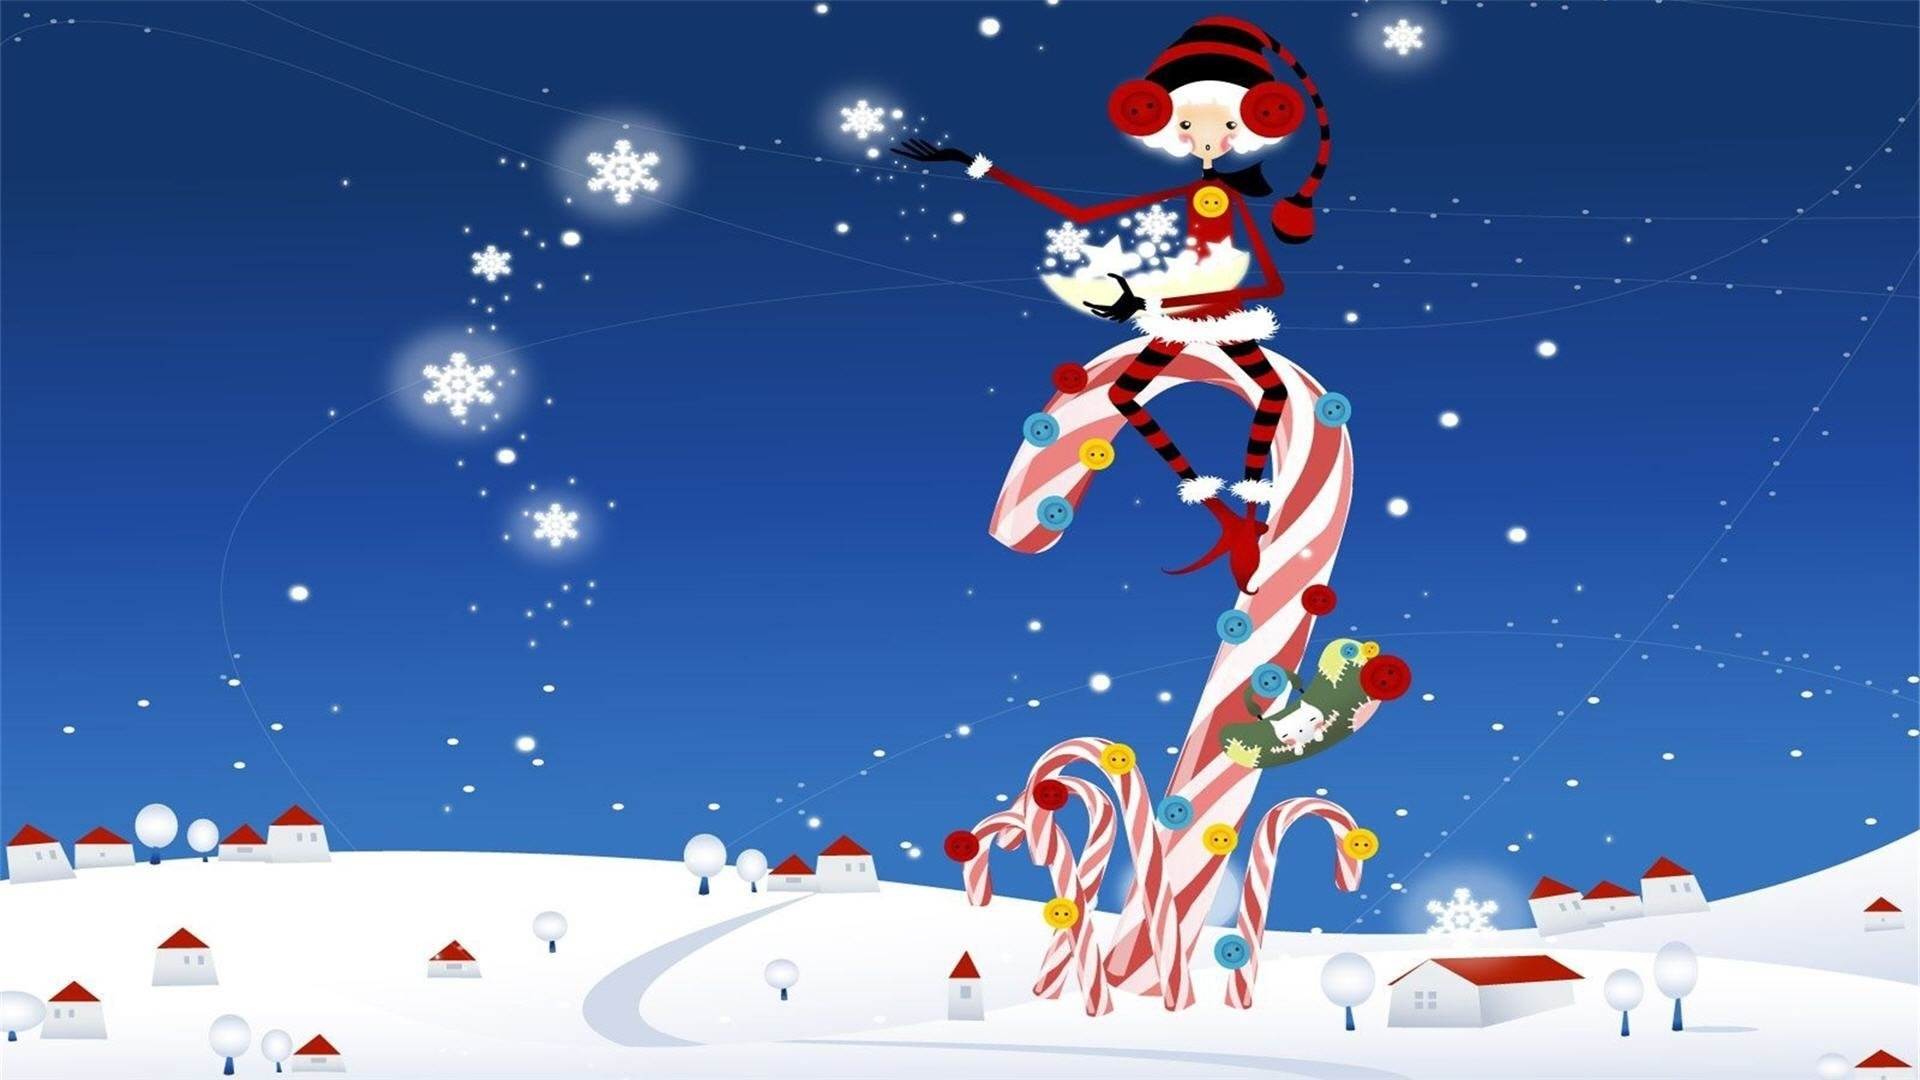 1920x1080 snoopy christmas wallpaper christmas wallpaper funny holiday events holidays albums - Snoopy Christmas Wallpaper